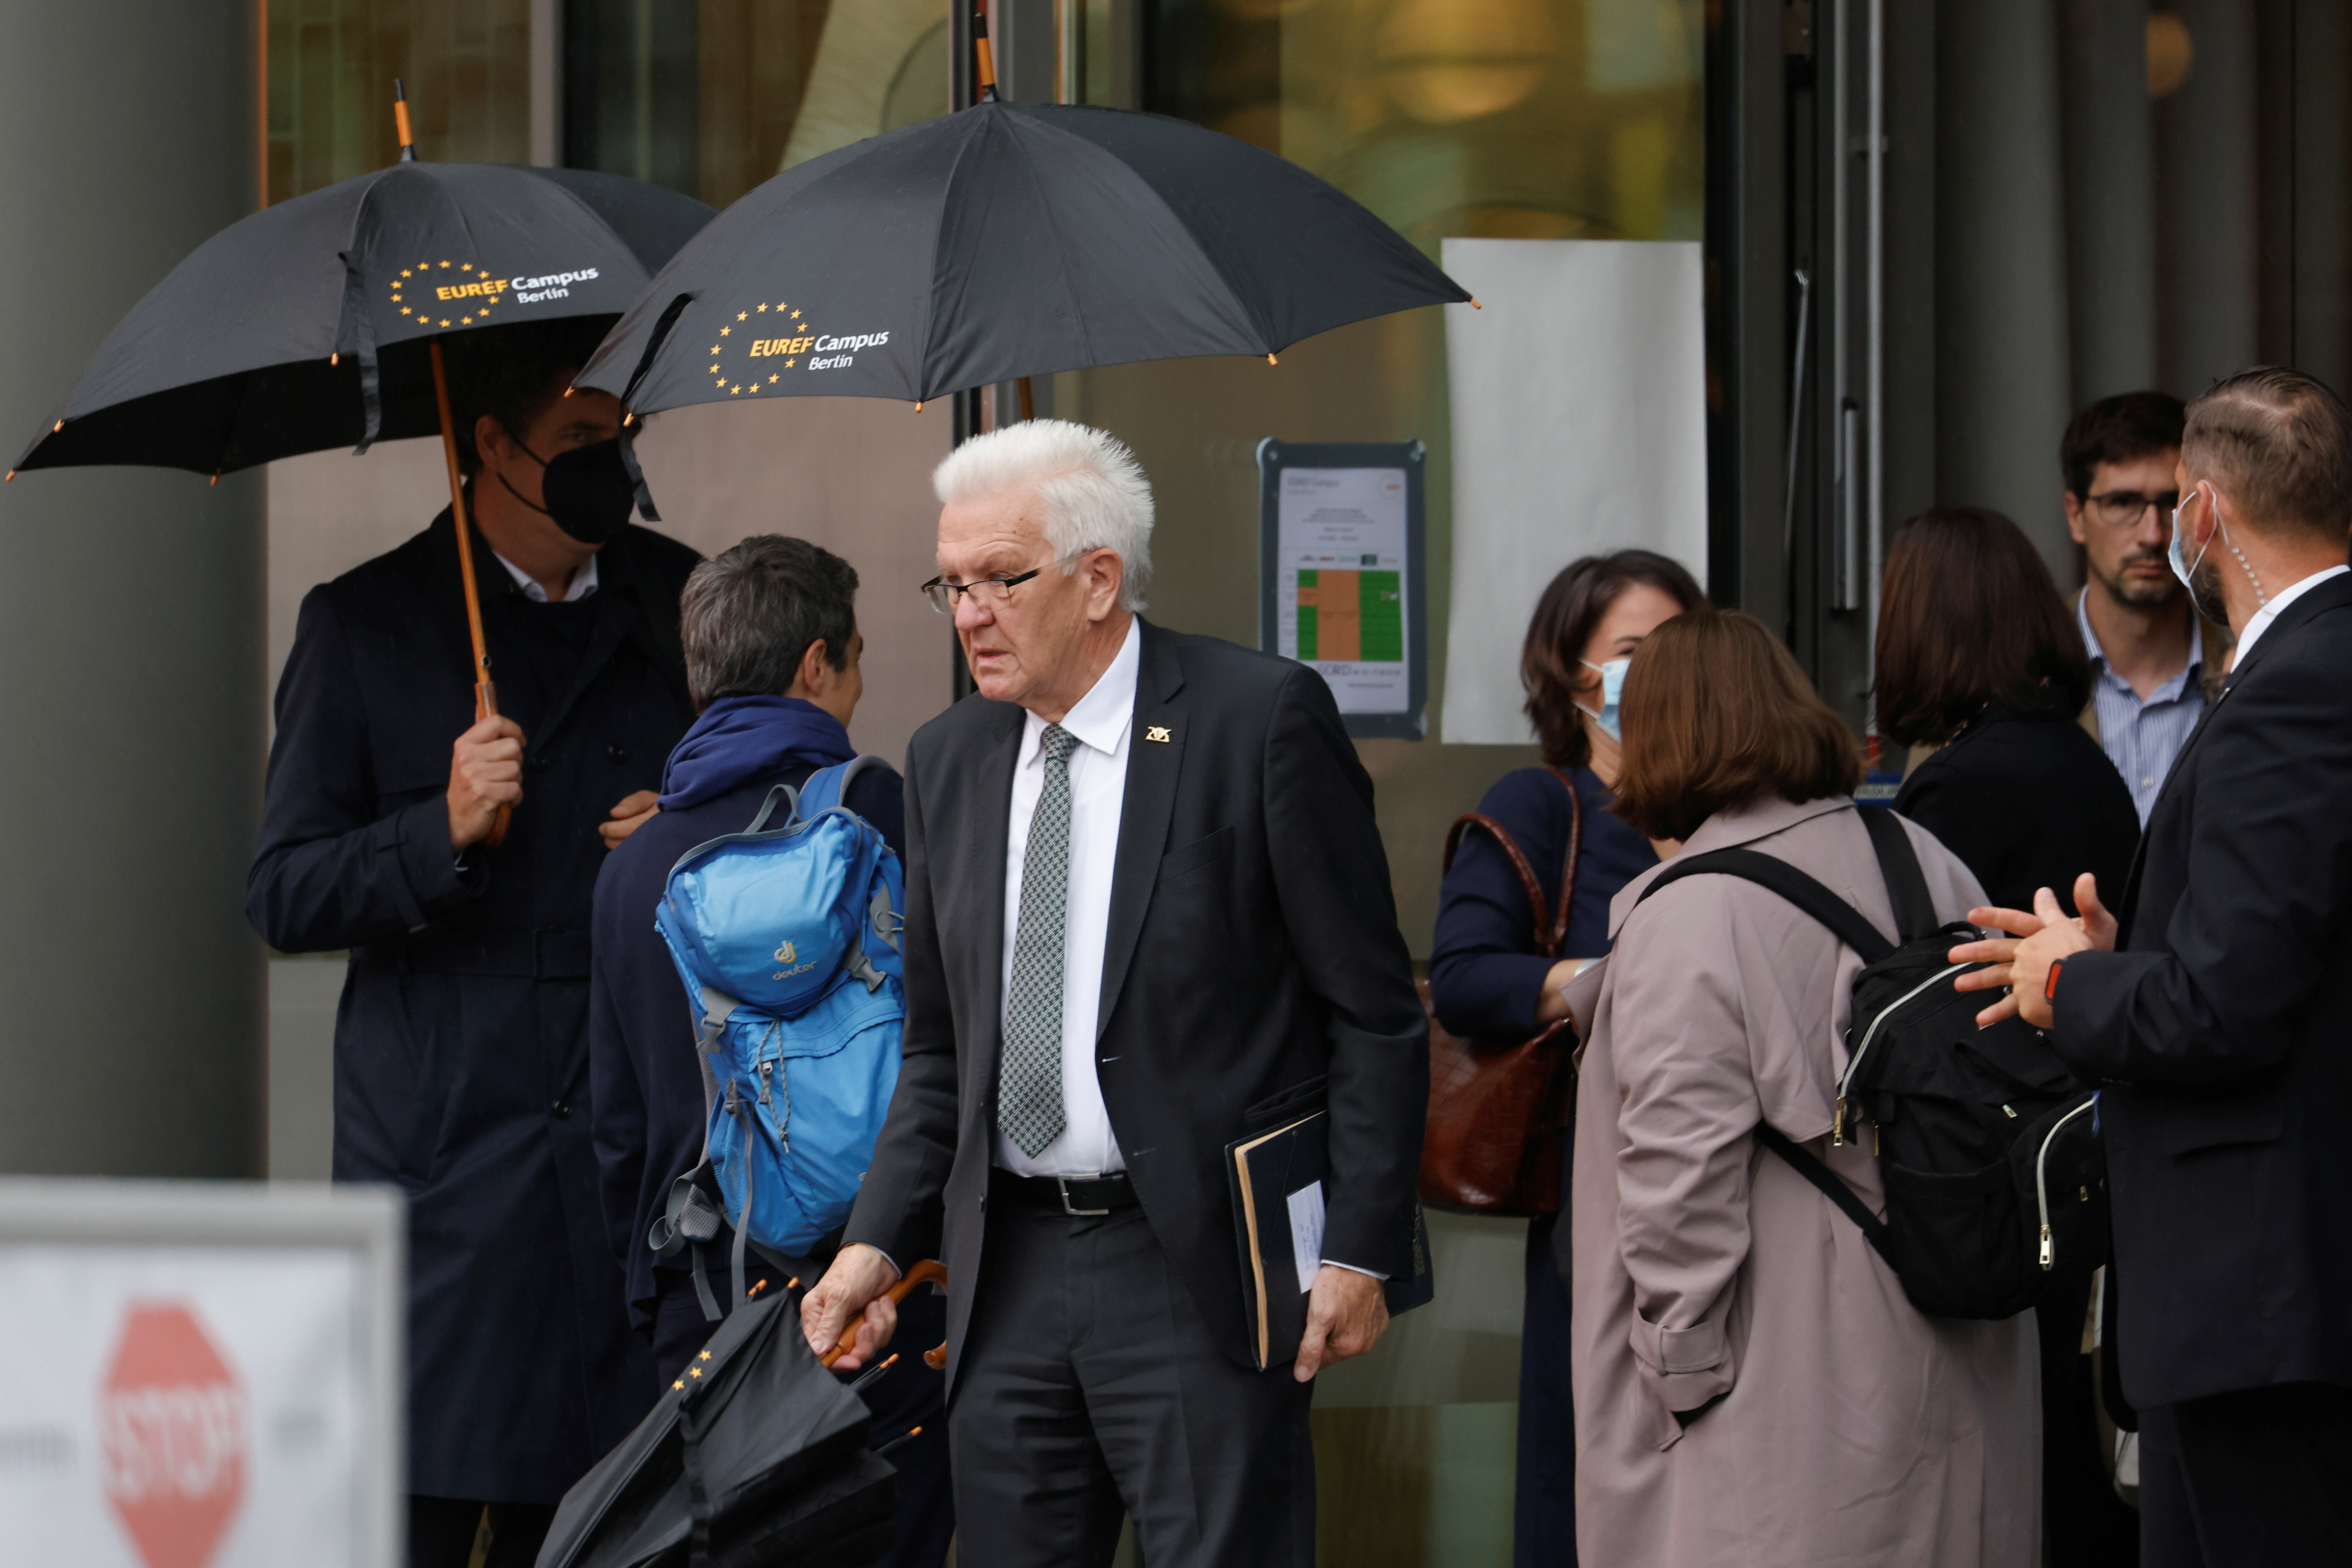 Winfried Kretschmann (The Greens), Minister President of Baden-Wuerttemberg, arrives to attend exploratory talks between the CDU, the CSU and the Greens for a possible new government coalition in Berlin, Germany, October 5, 2021. REUTERS/Michele Tantussi